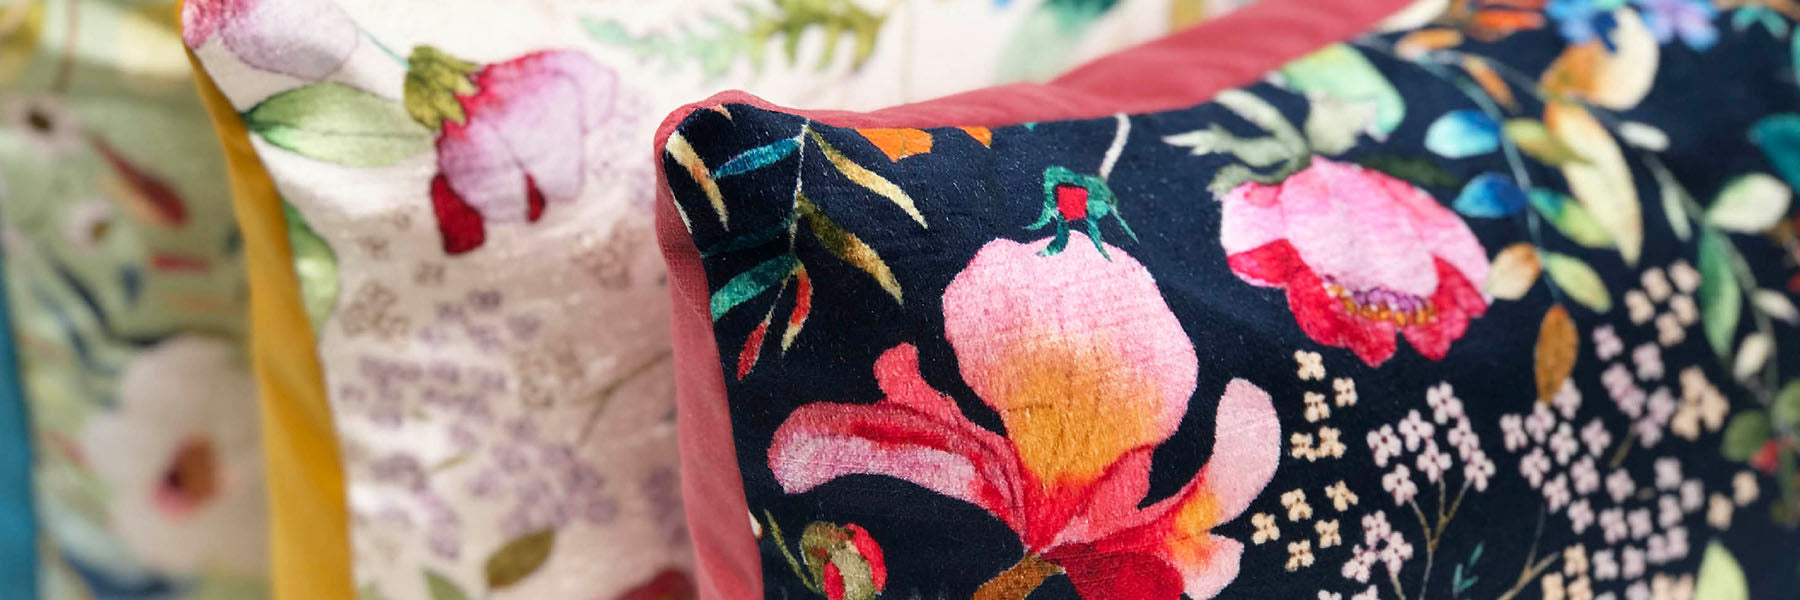 cushions velvet floral luxury Philip clay